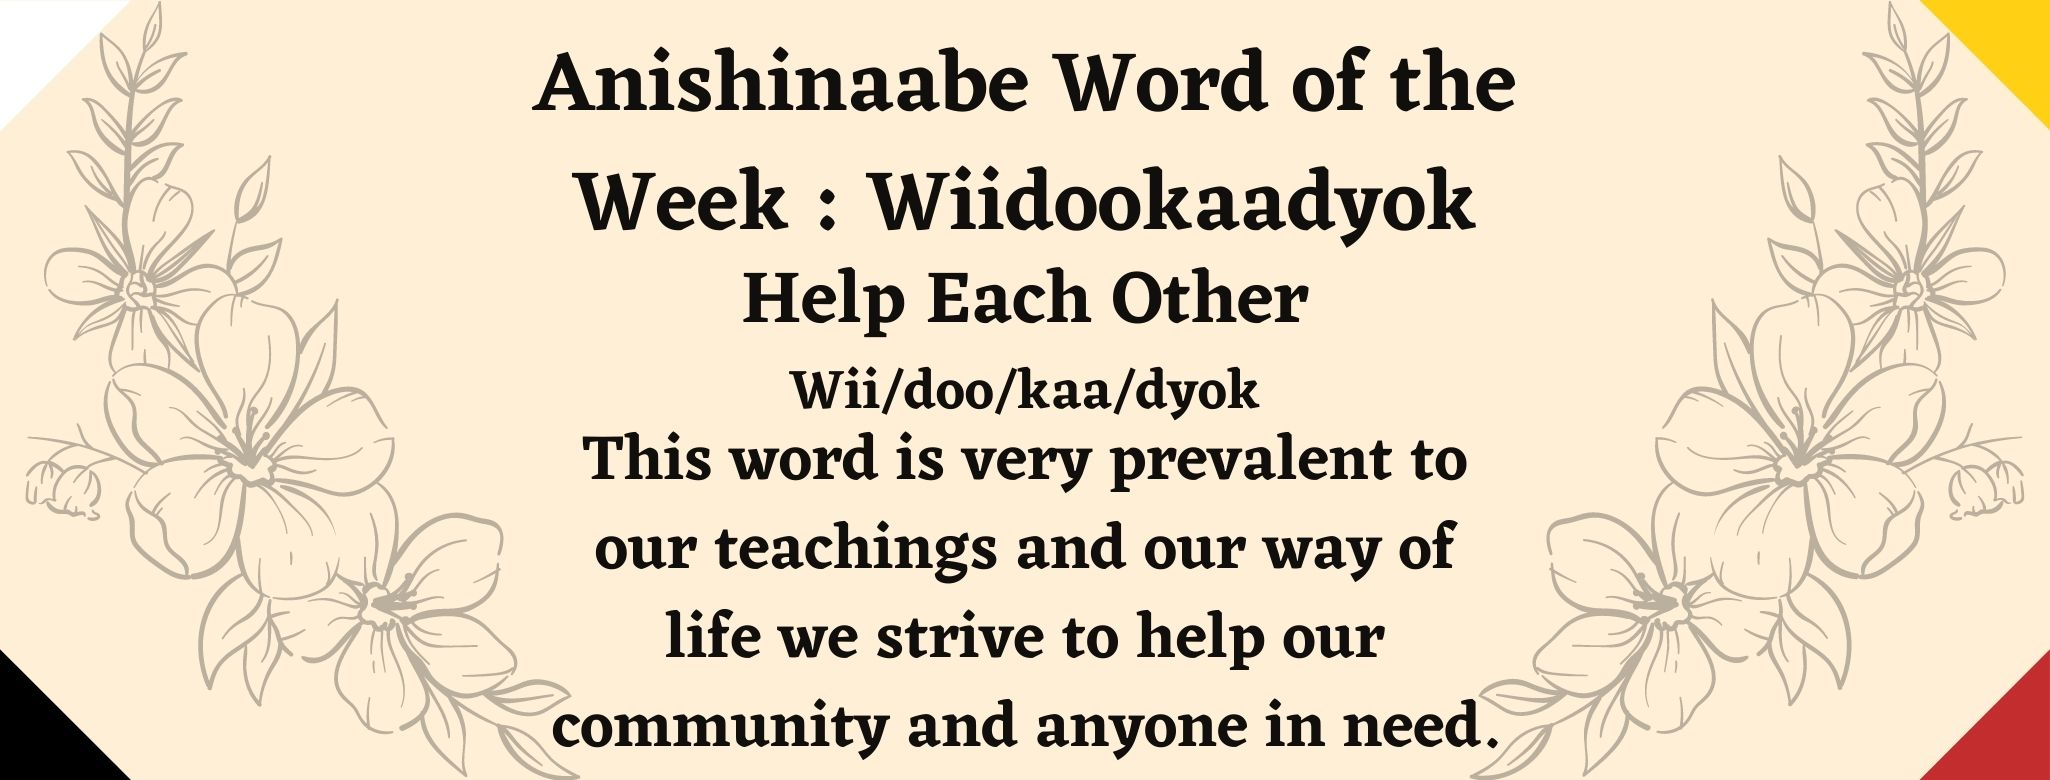 Anishinabe word of the week Wiidookaadyok